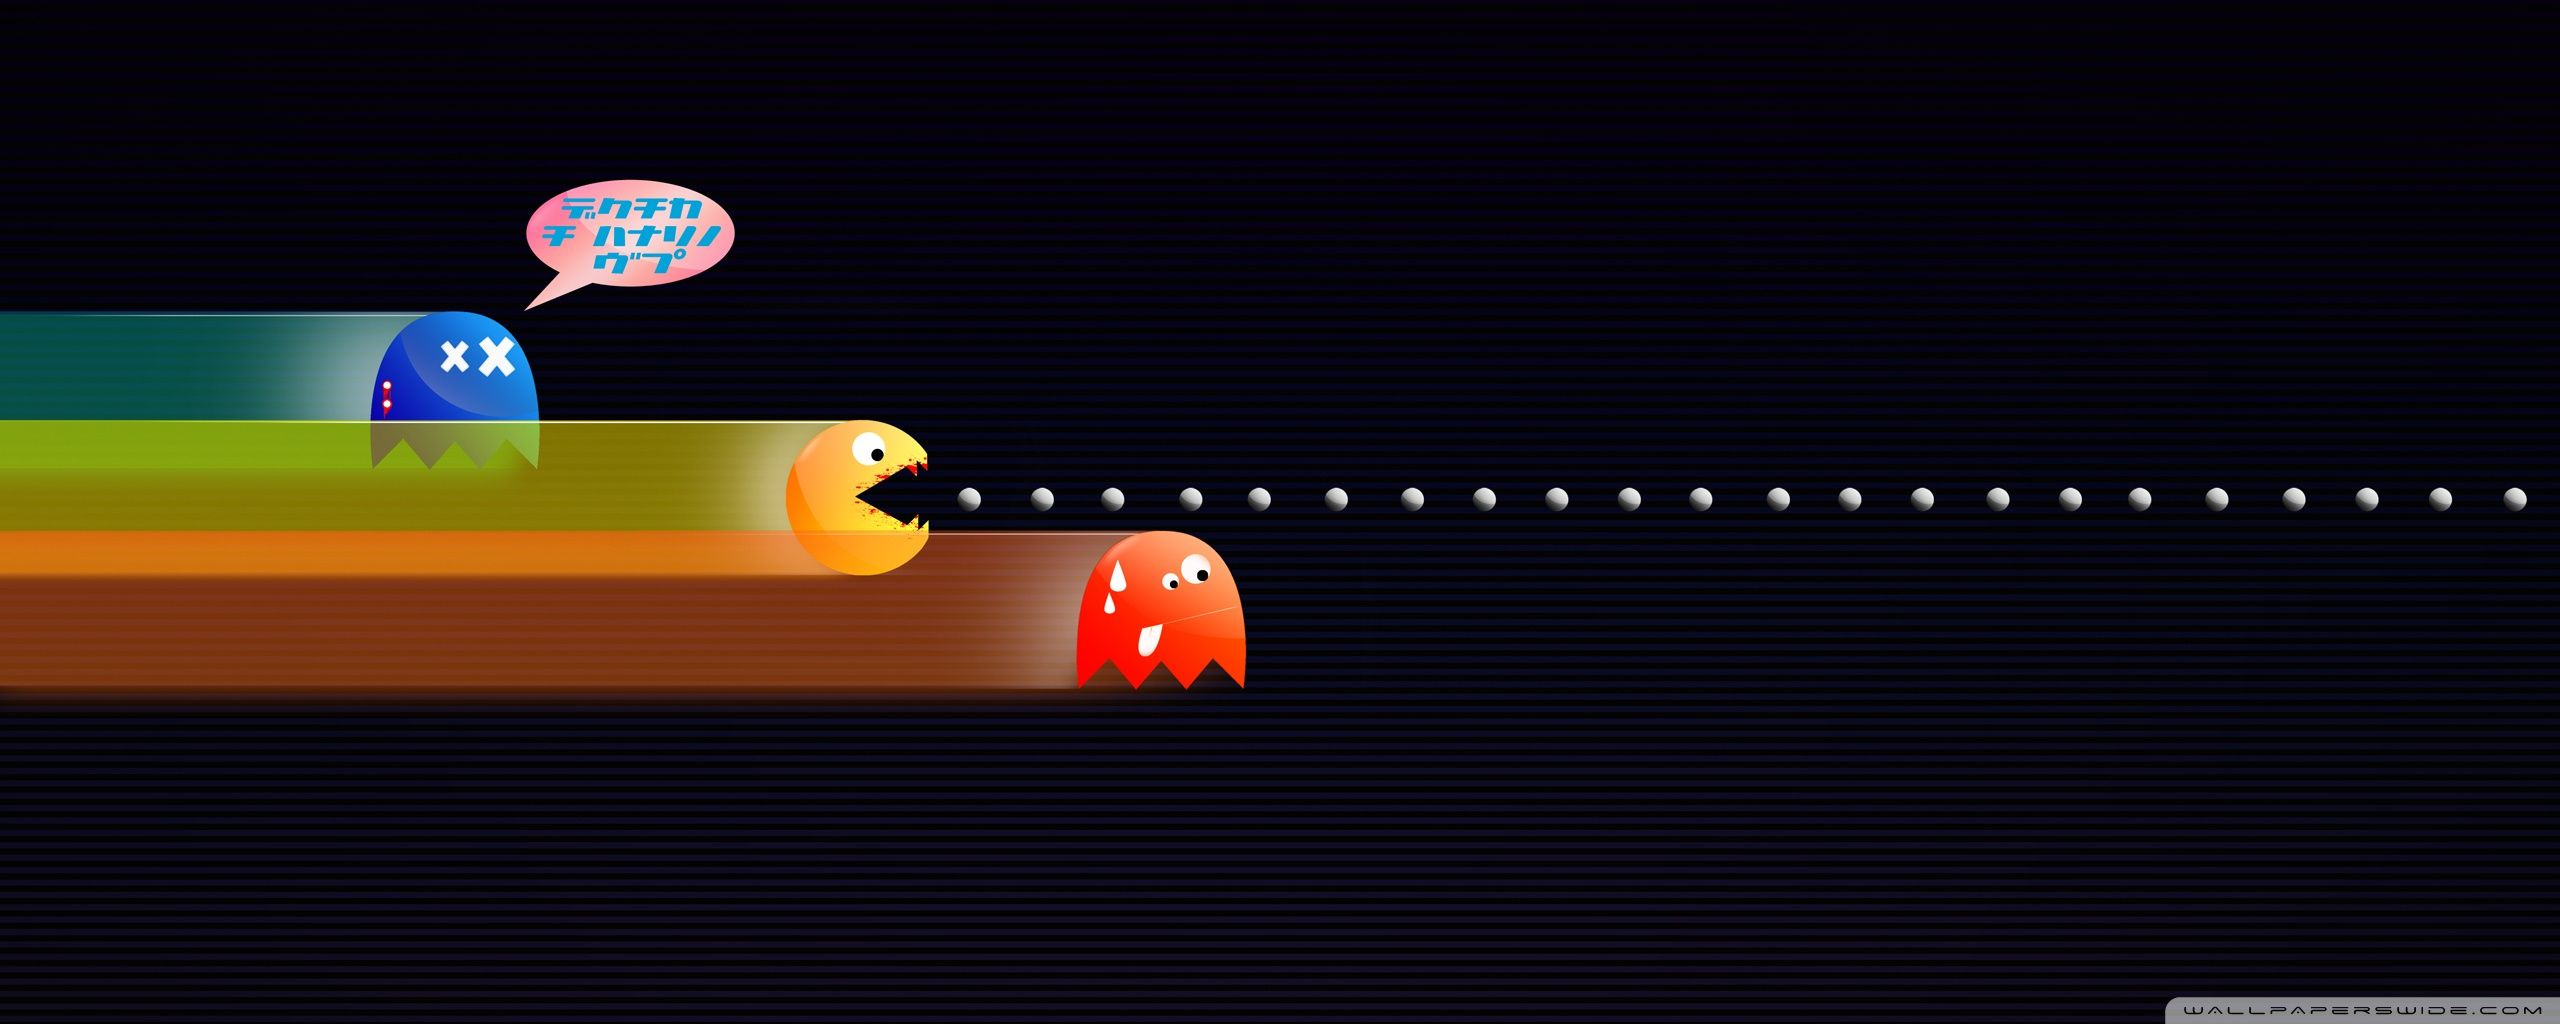 2560x1024 pac man dual monitor wallpaper 2 | Dual Monitor Wallpaper